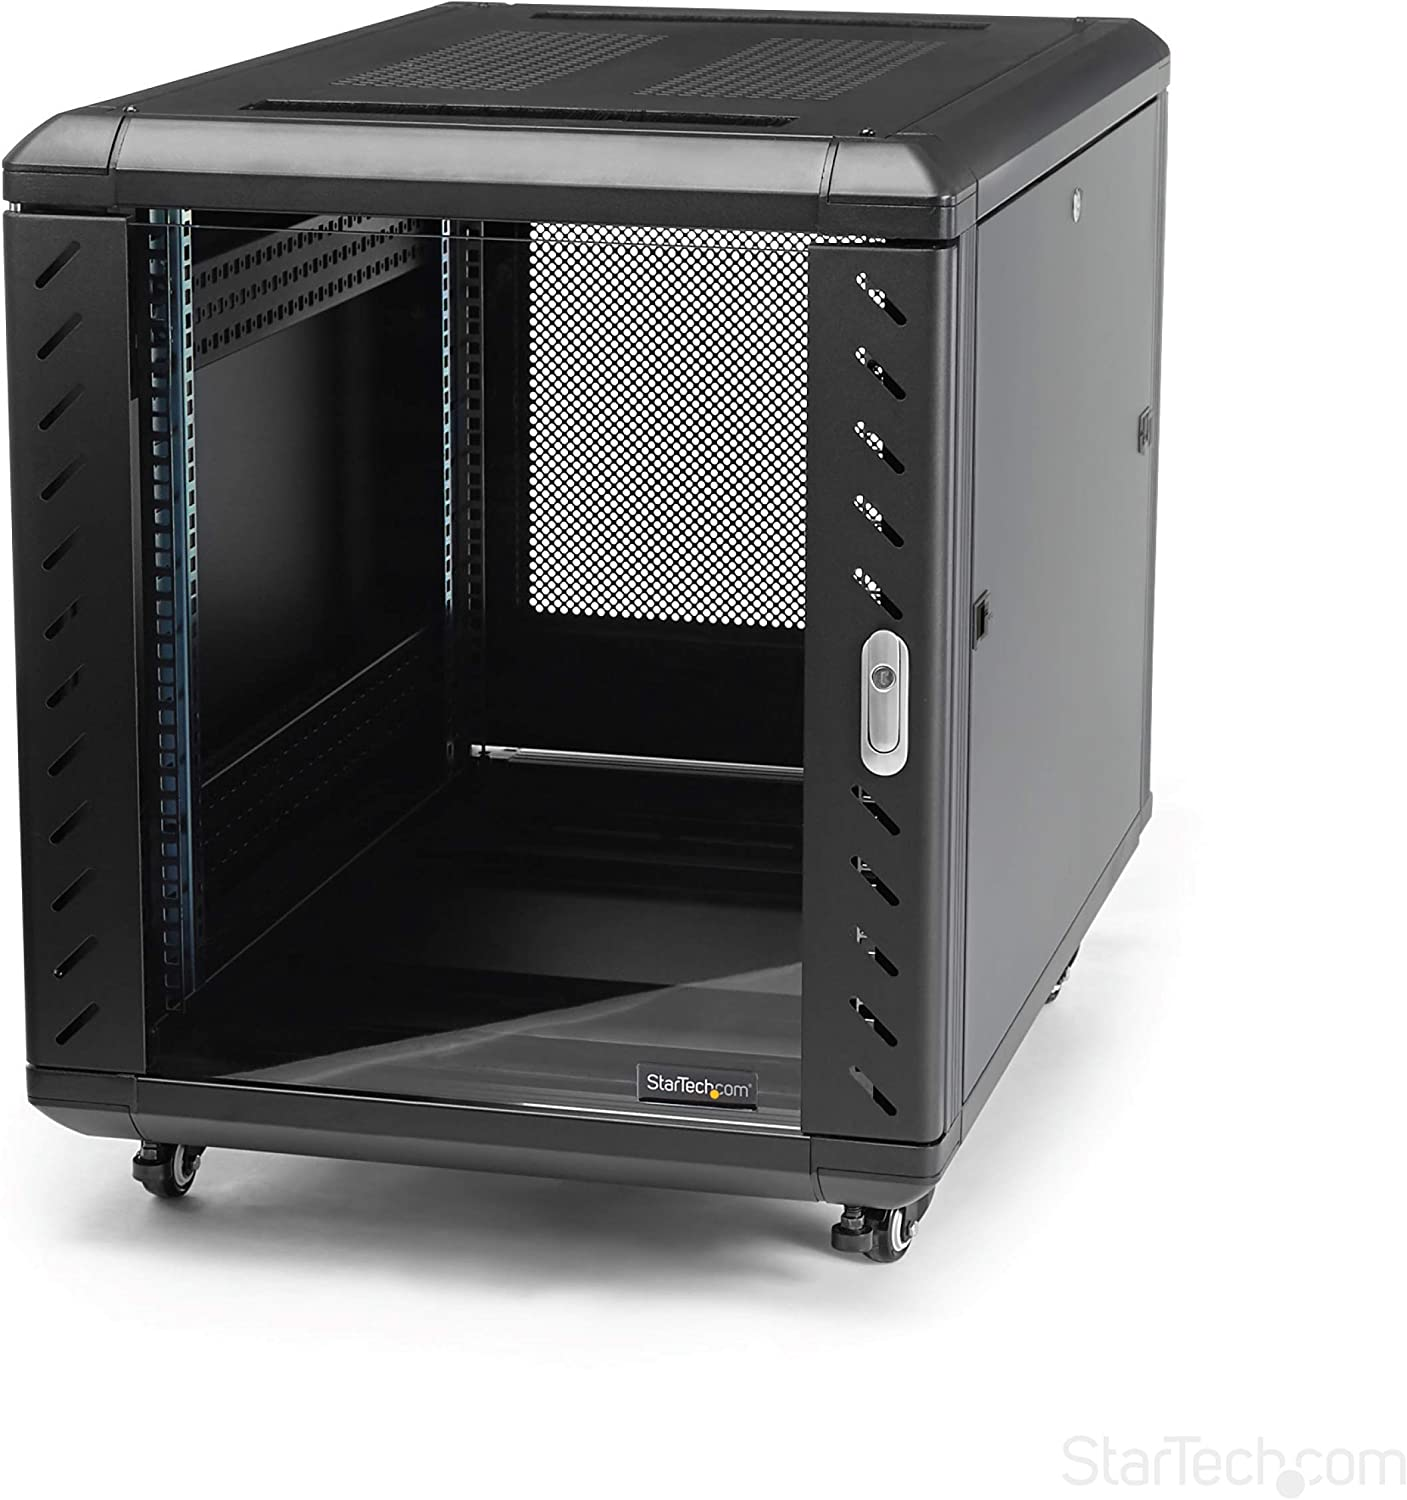 StarTech.com 12U AV Rack Cabinet - Network Rack with Glass Door - 19 inch Computer Cabinet for Server Room or Office (RK1236BKF)